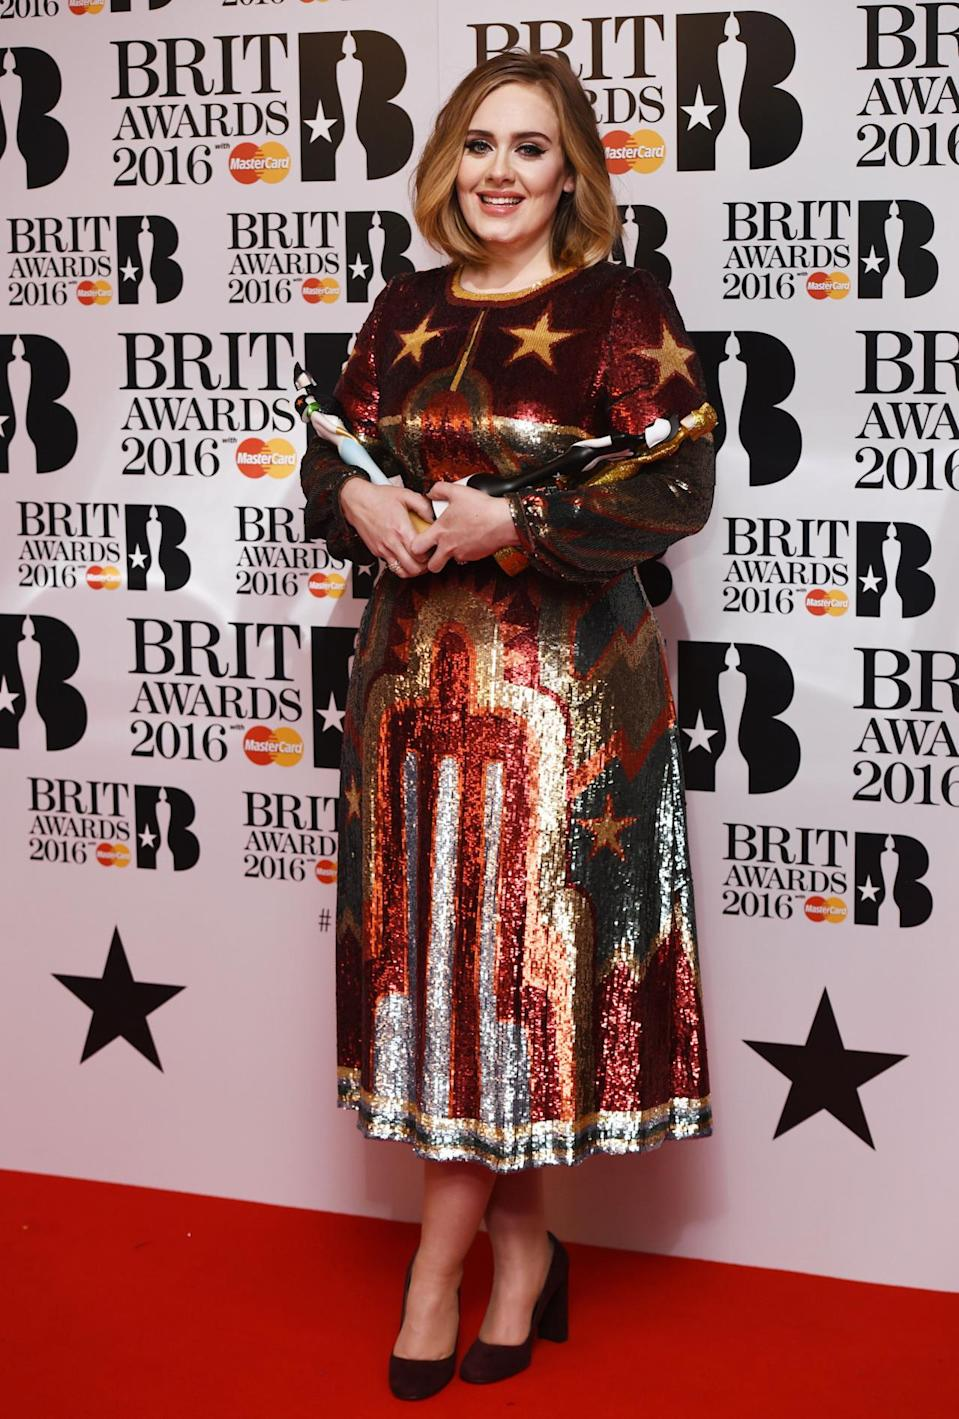 <p>The singer, who bagged four Brit Awards in total, changed into this dreamy sequin-covered number for her performance. <i>[Photo: Rex]</i></p>